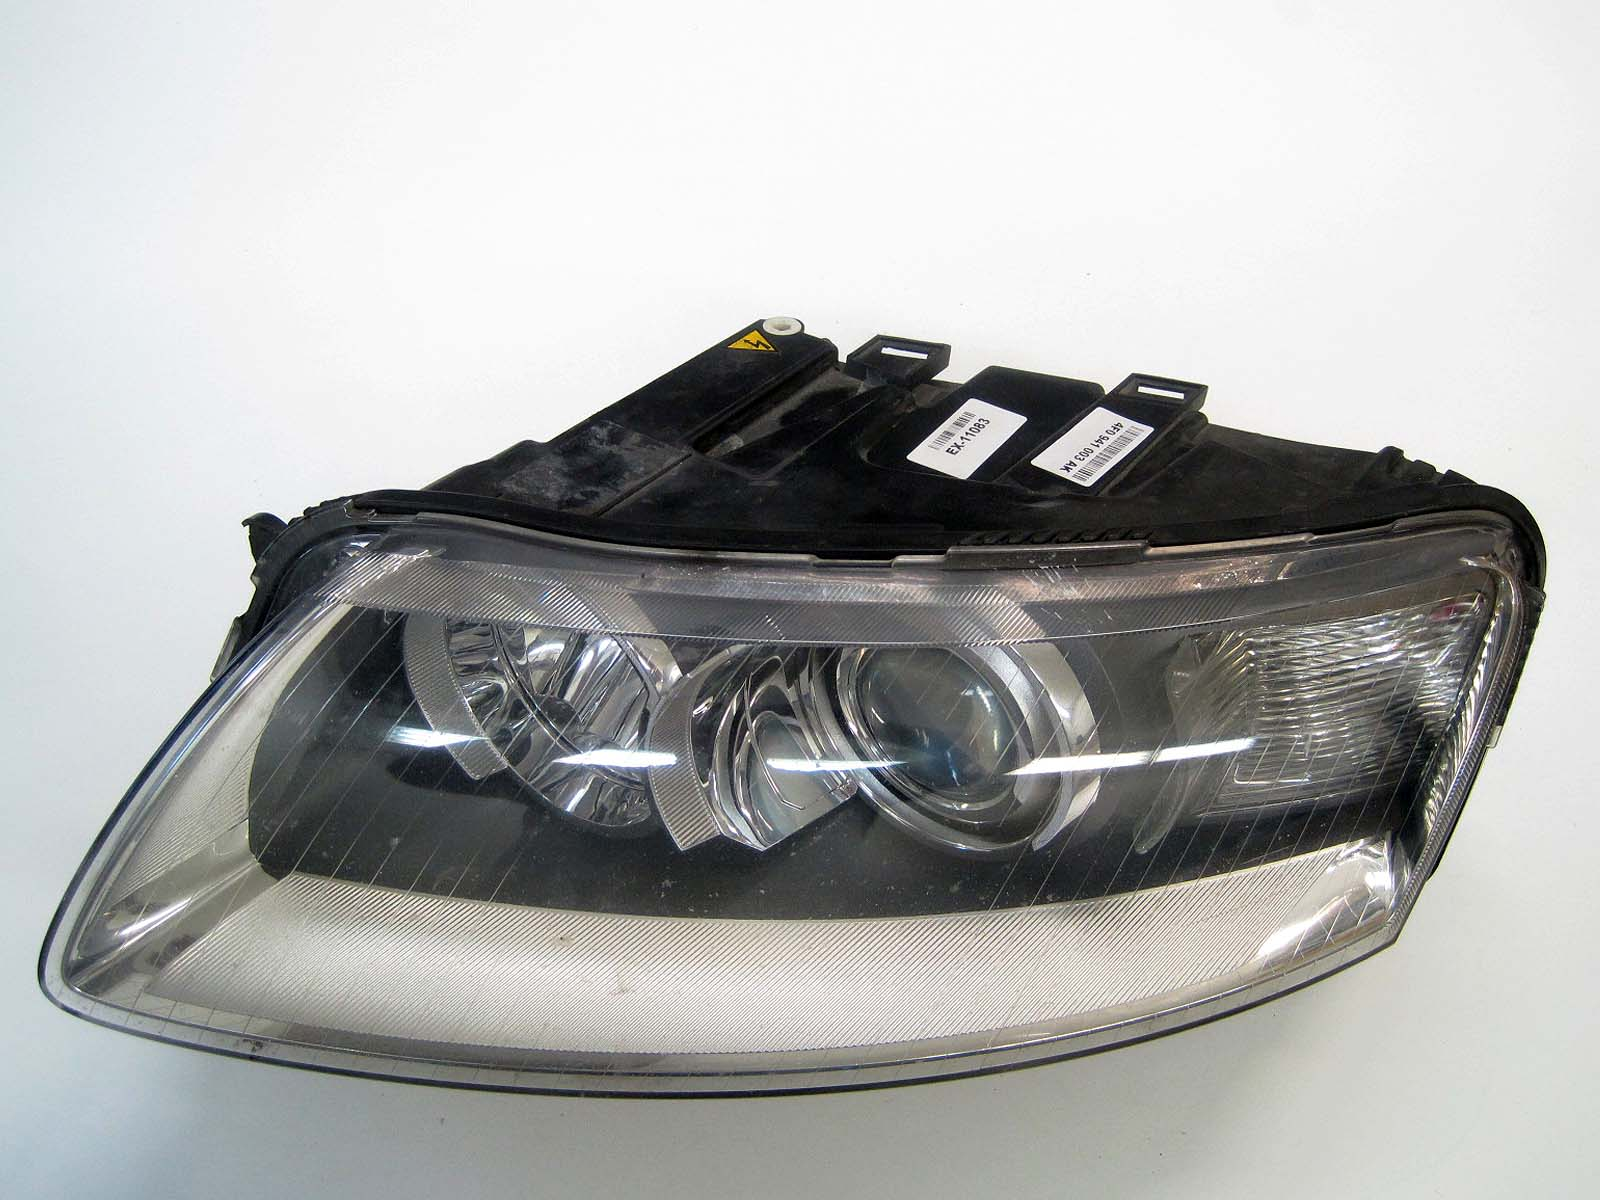 Headlight used 4F0941003AK